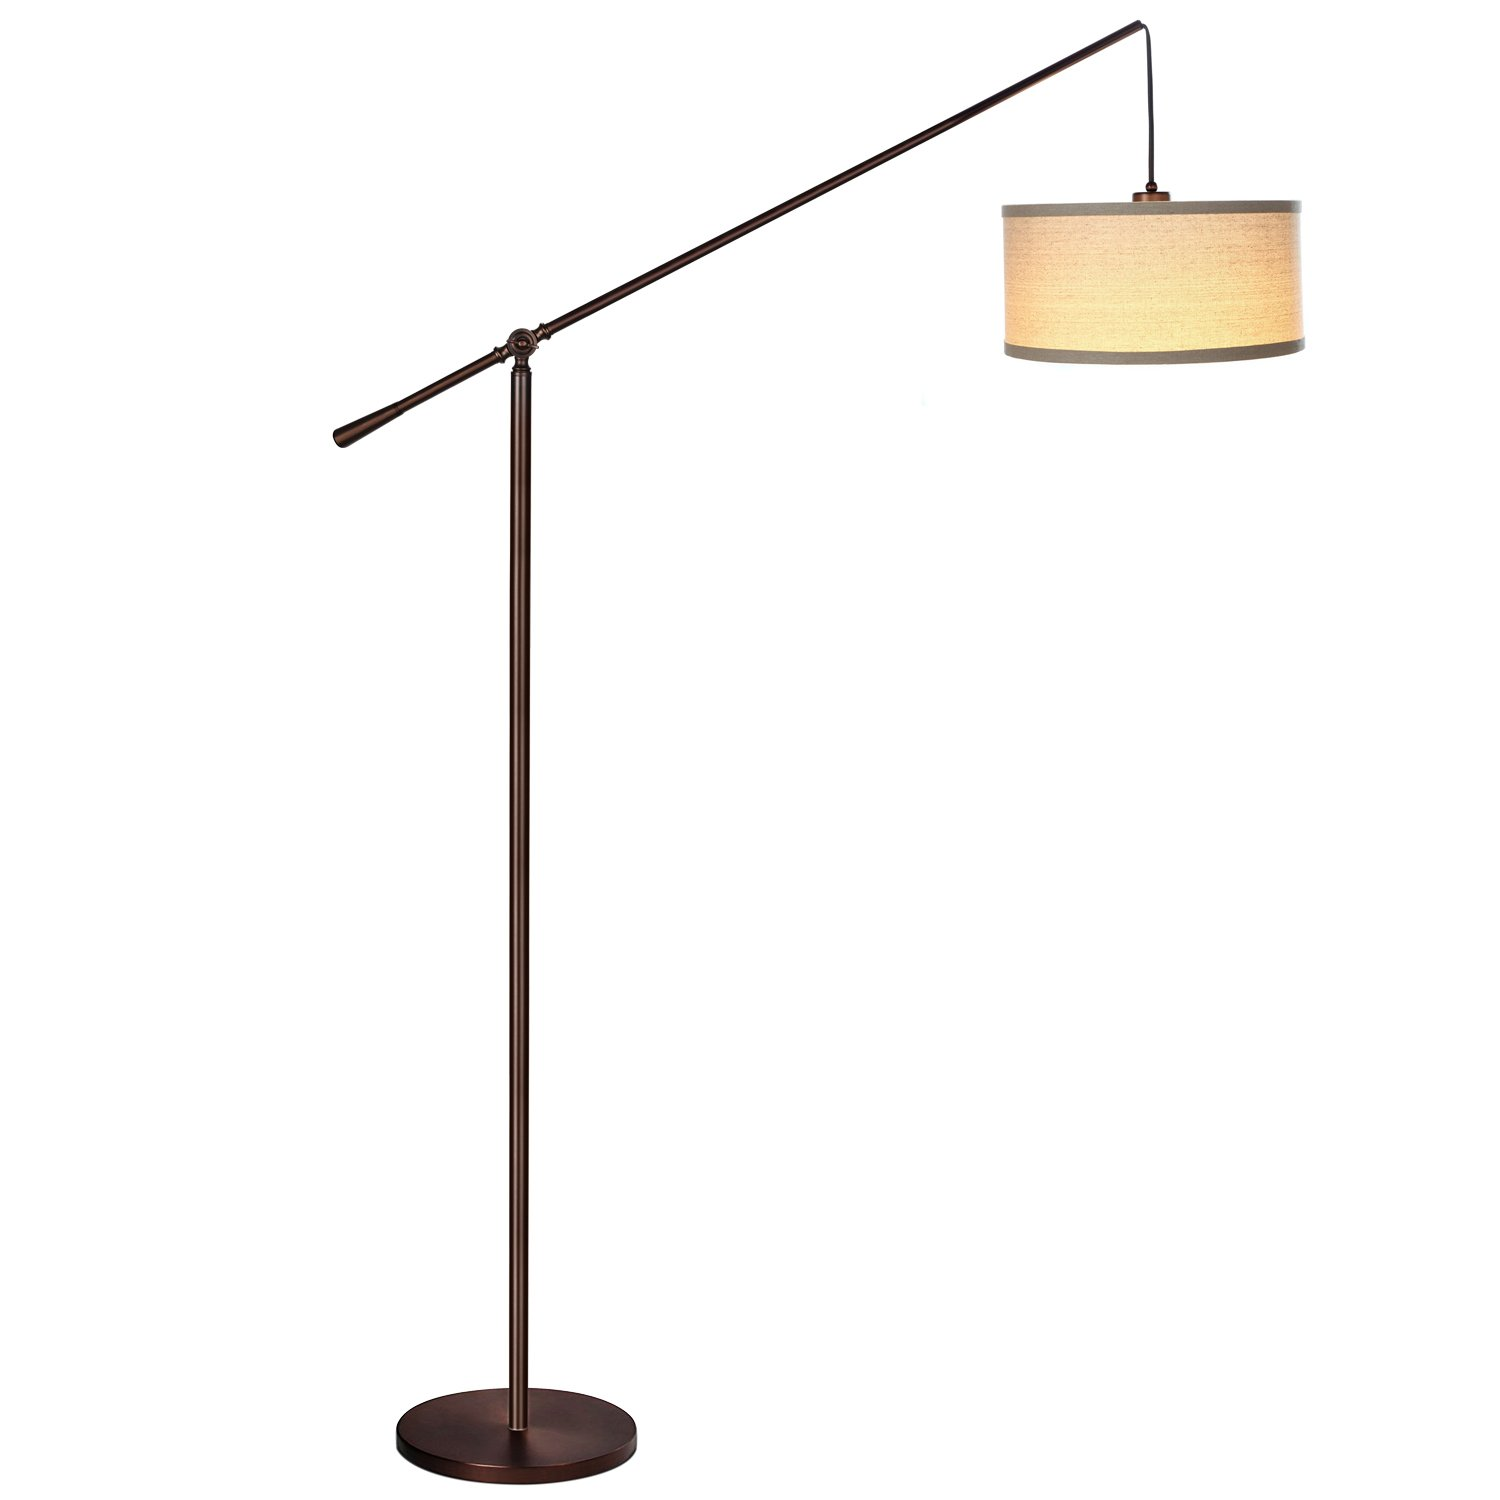 Brightech Hudson Pendant Floor Lamp – Classic Elevated Crane Arc Floor Lamp with Linen-Textured Hanging Lamp Shade- Tall, Industrial, Adjustable Uplight Lamp for Living Room, Office, or Bedroom Bronze